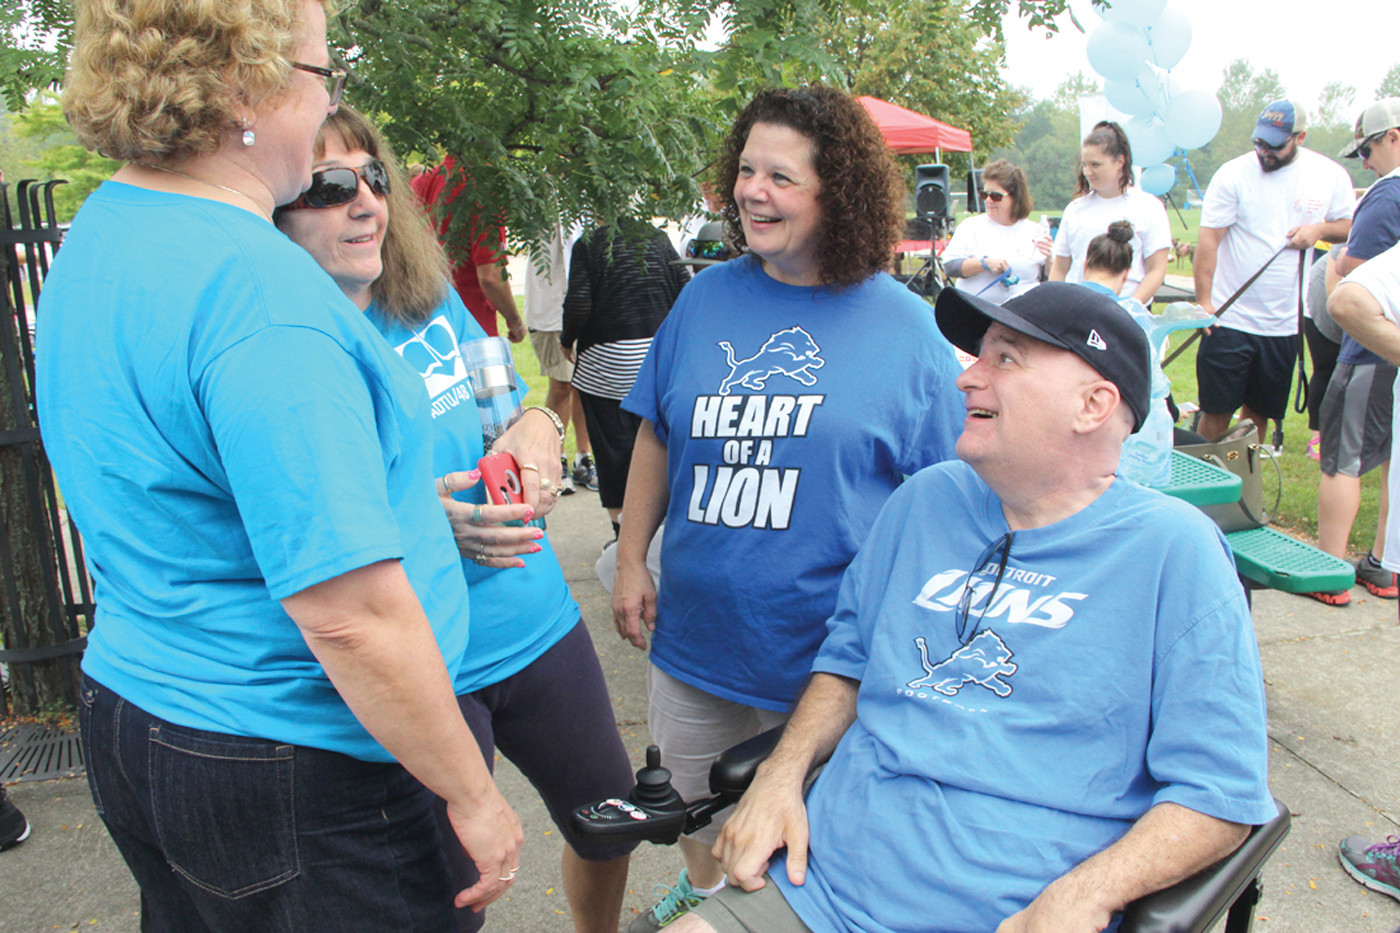 TEAM INSPIRATION: Ron Rounds of Warwick, who was diagnosed with ALS about two years ago, is joined by his wife Julie and other members of the Lion Heart team who walked the track at Conferda Sports Complex Sunday.